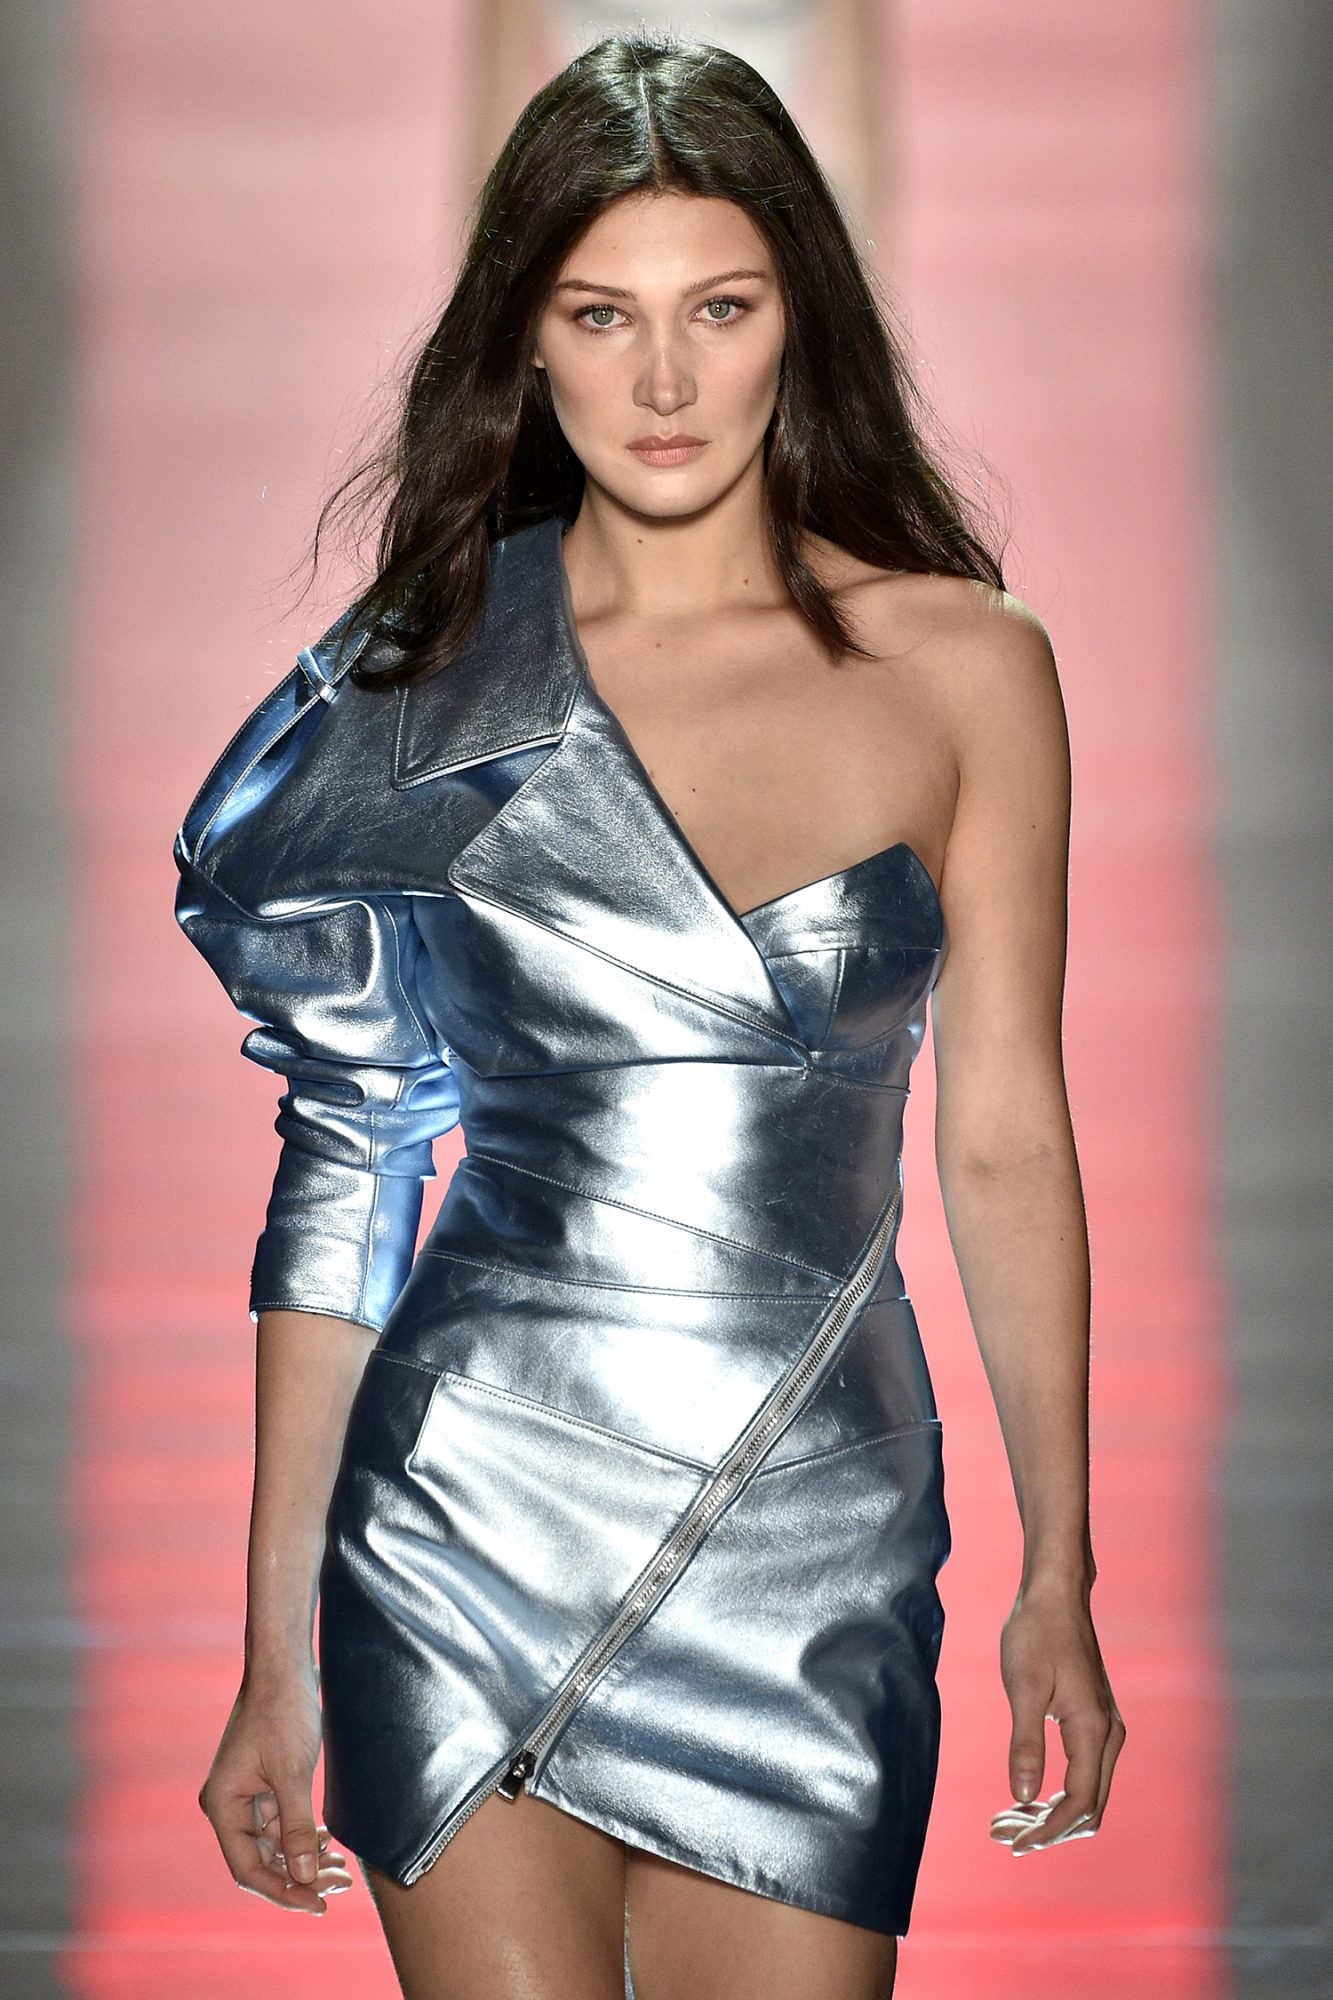 PARIS, FRANCE - JANUARY 24: Bella Hadid walks the runway during the Alexandre Vauthier Spring Summer 2017 show as part of Paris Fashion Week on January 24, 2017 in Paris, France. (Photo by Kristy Sparow/Getty Images)